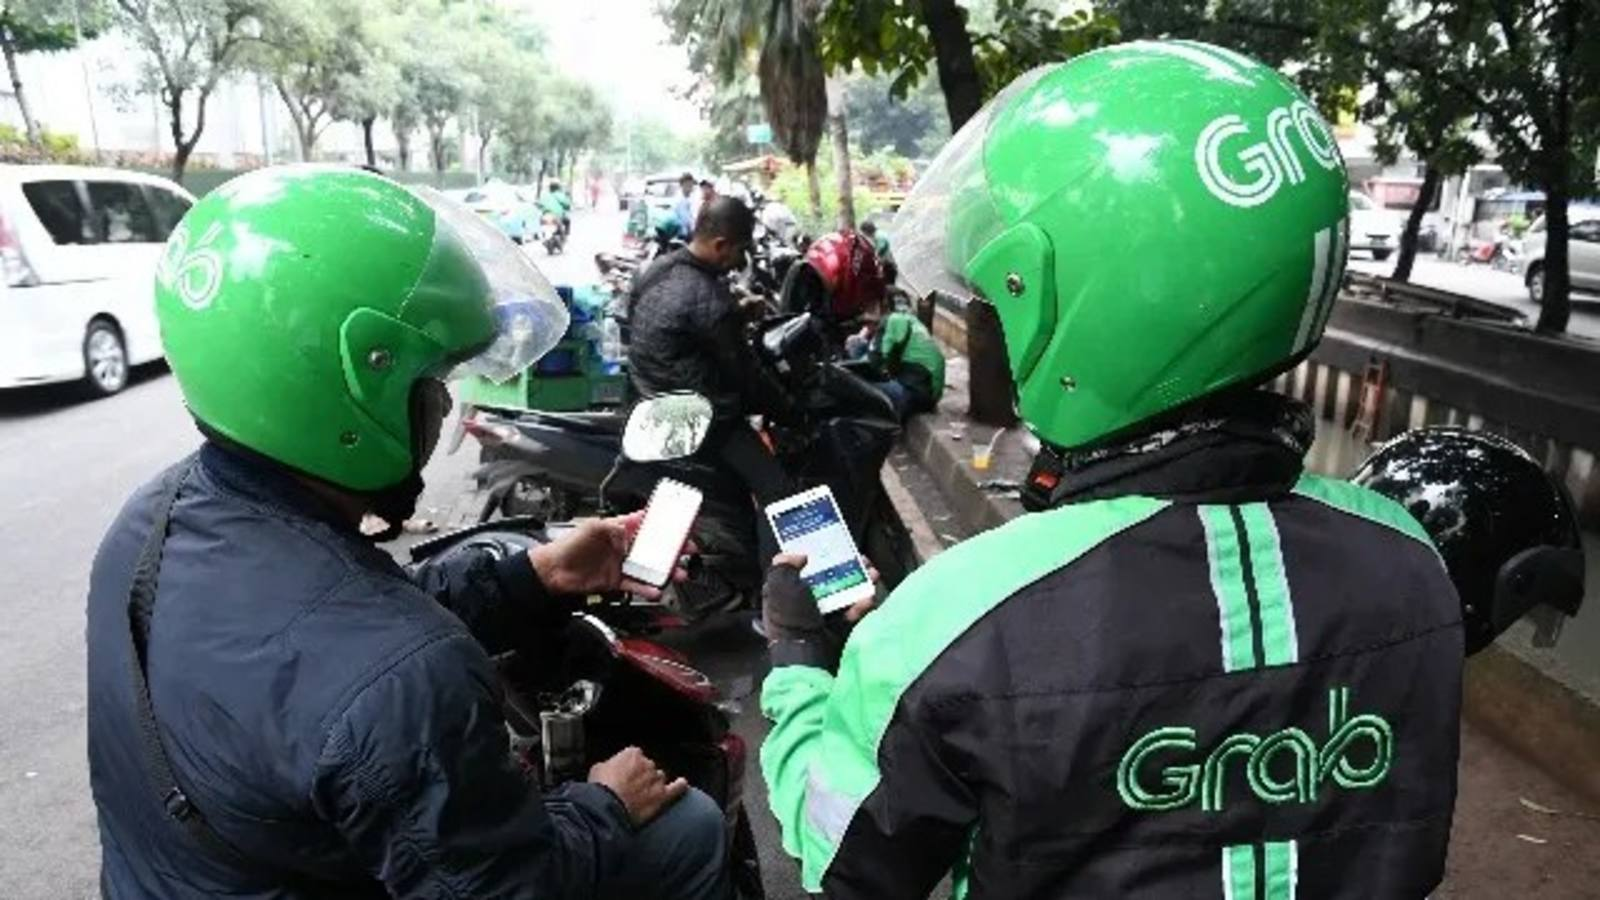 Didi And Grab S Ride Hailing Battle Shifts Focus To Safety And Quality Nikkei Asia